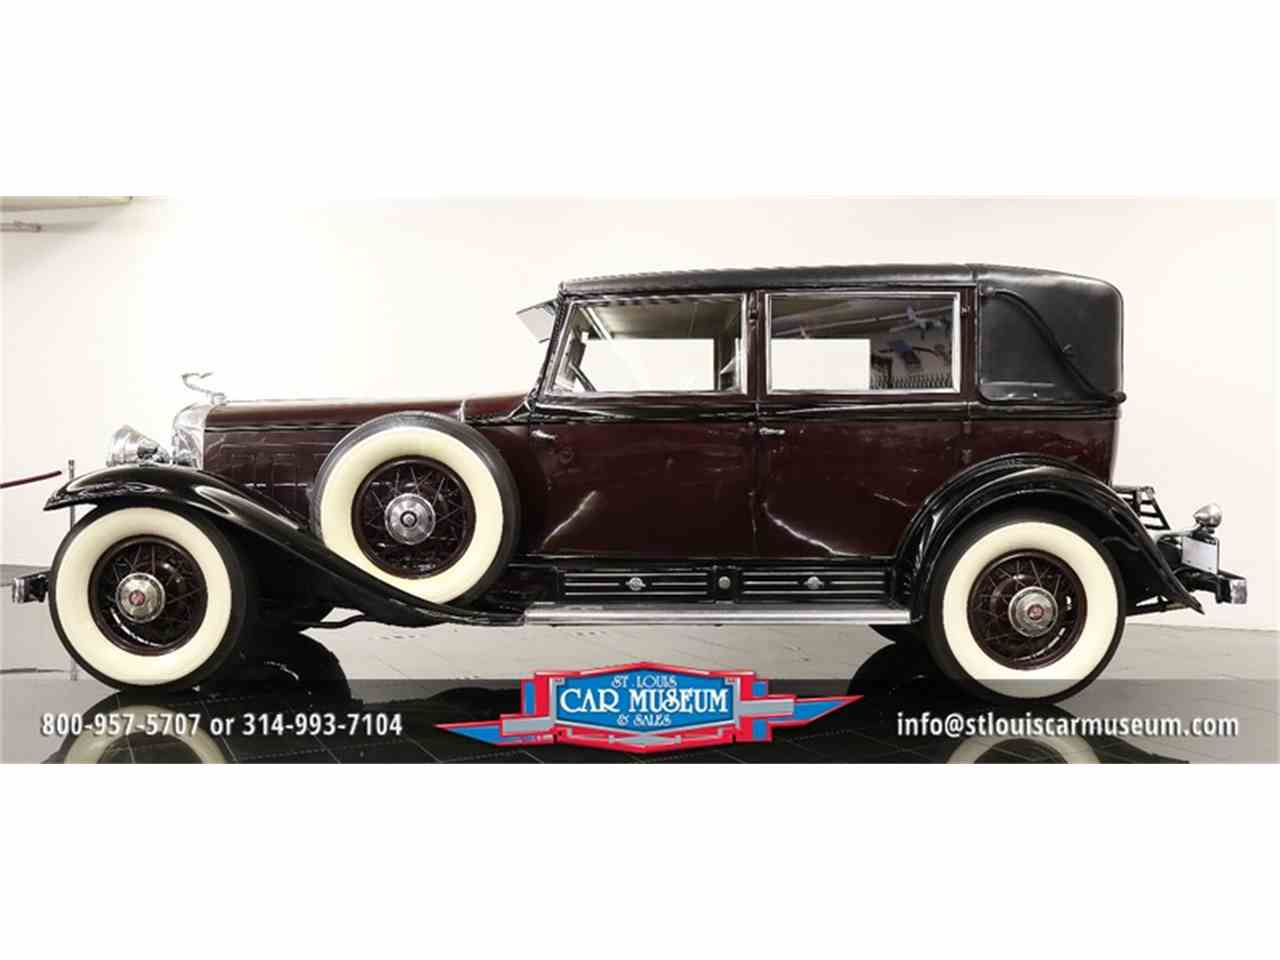 Large Picture of Classic 1931 Cadillac V-16 Madam X Landau Sedan located in Missouri - $374,900.00 Offered by St. Louis Car Museum - JSU3